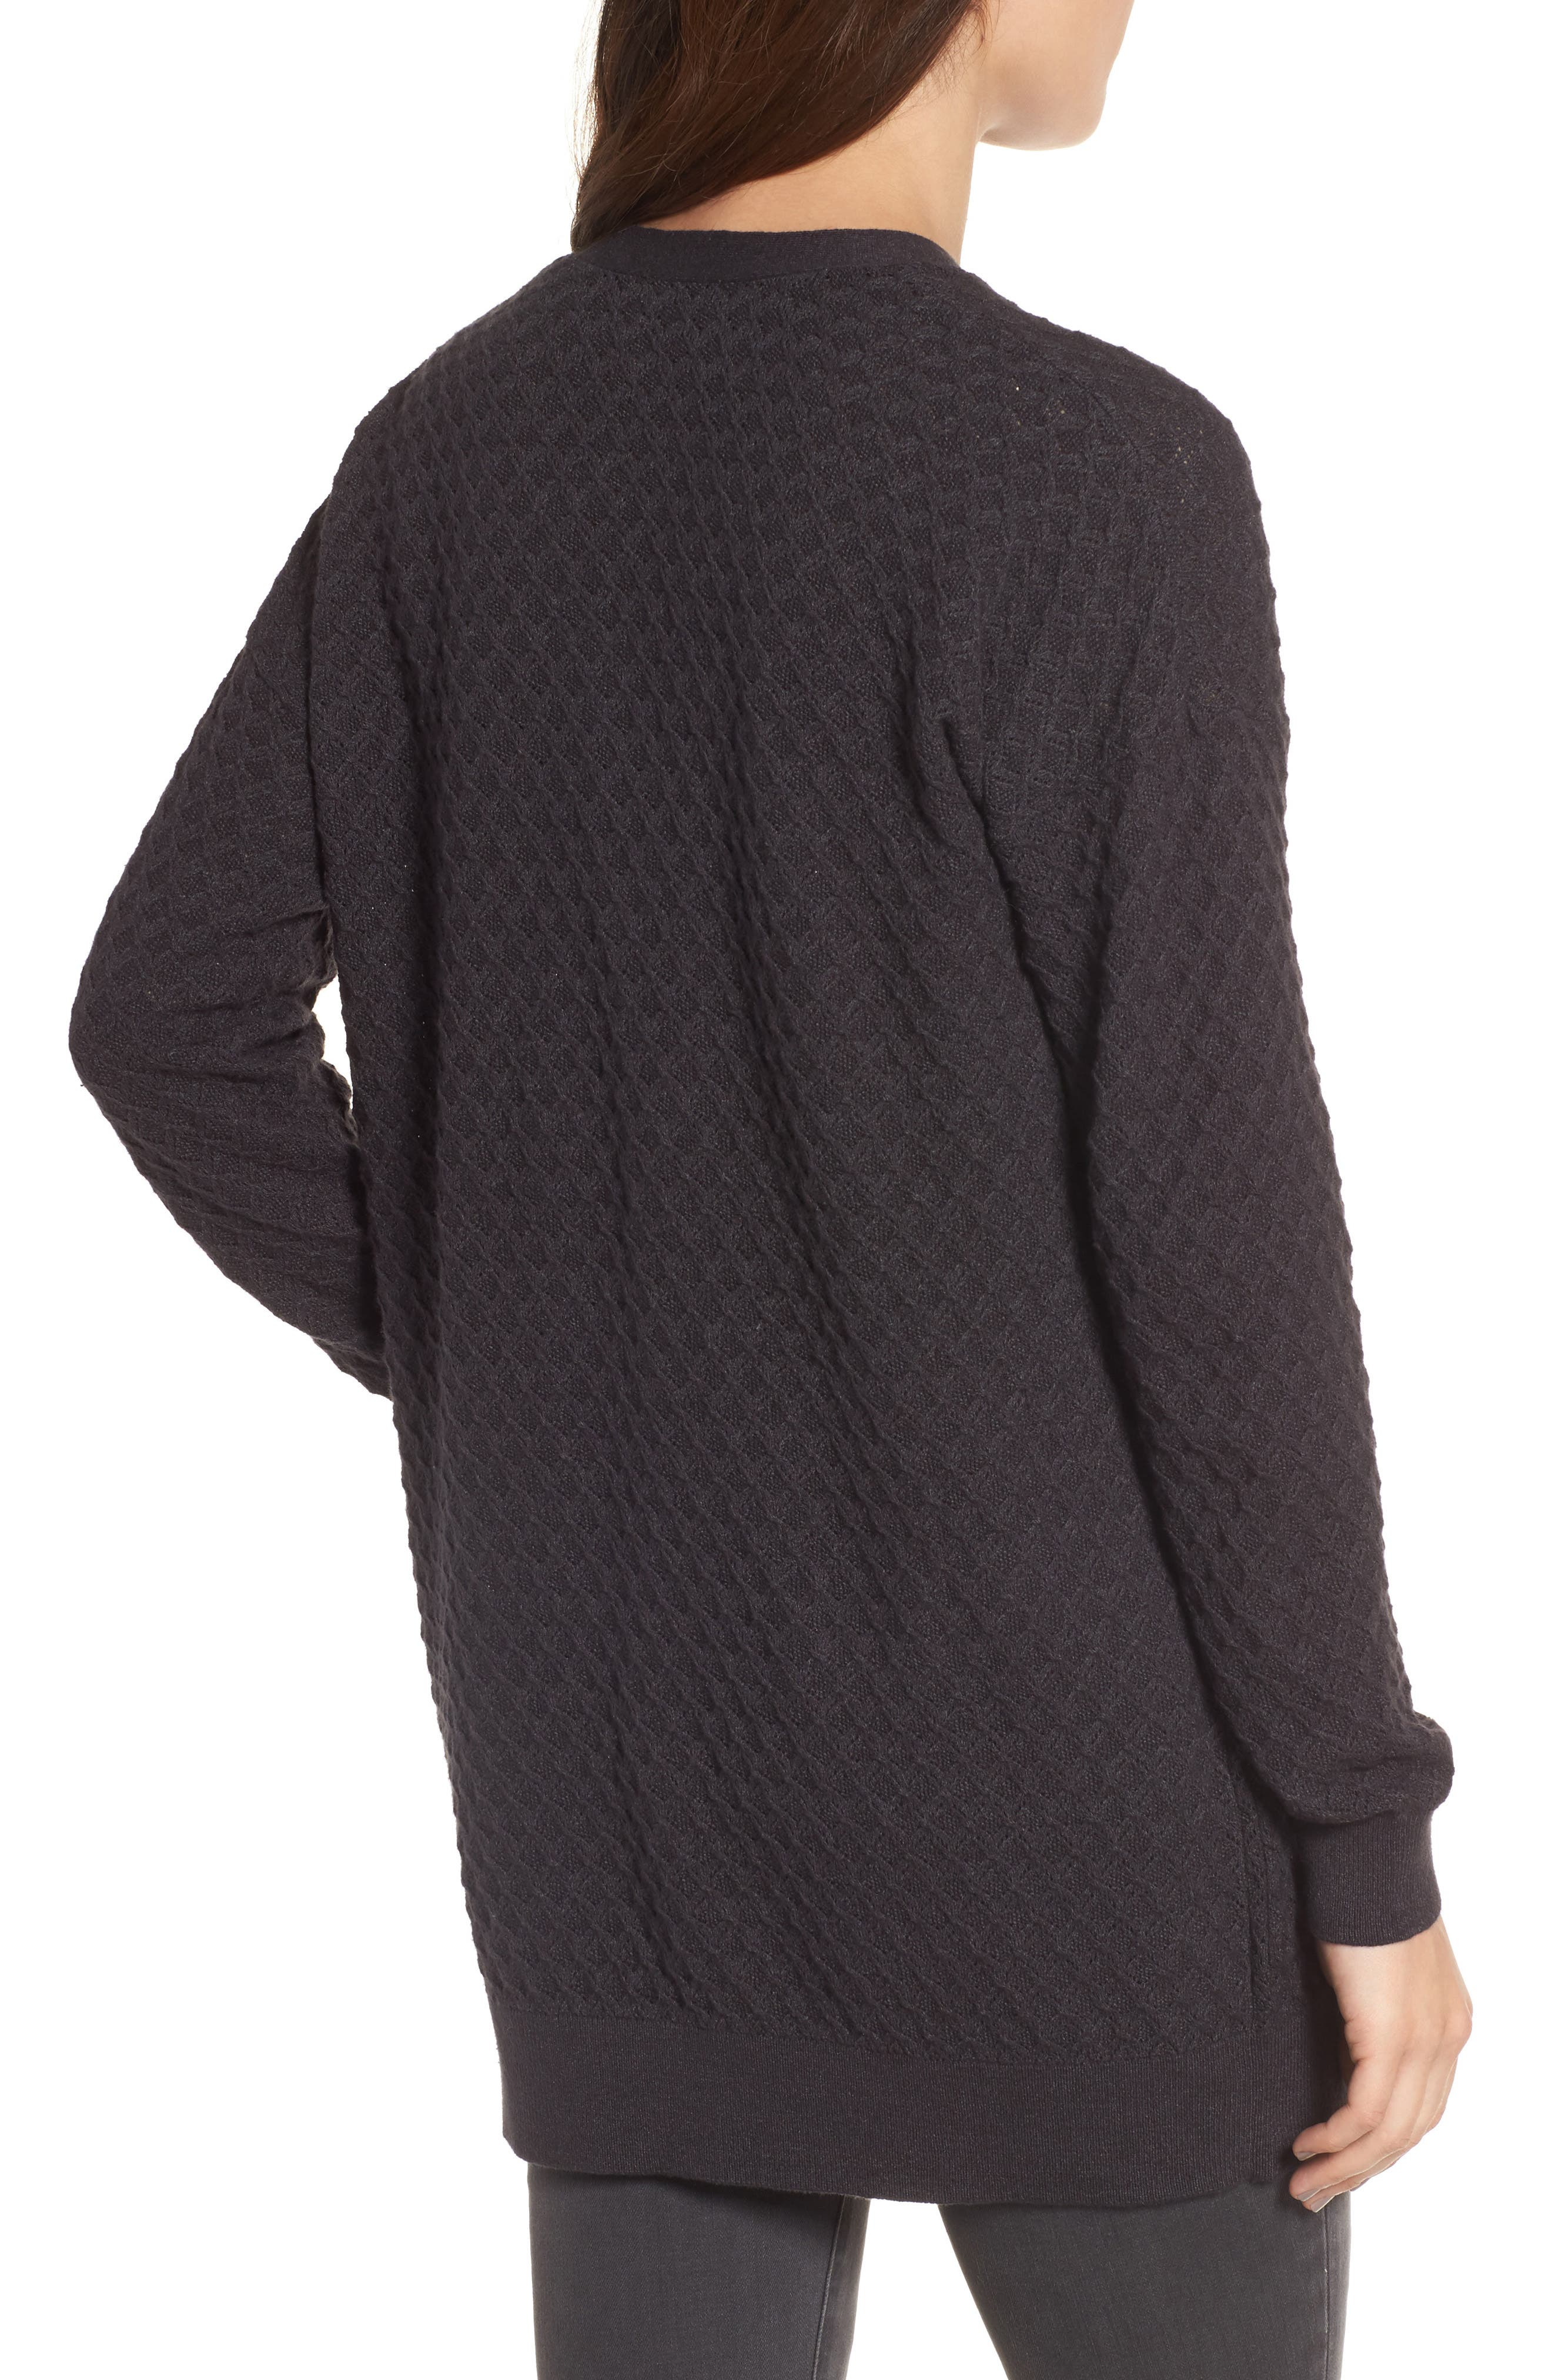 Pointelle Cardigan Sweater,                             Alternate thumbnail 5, color,